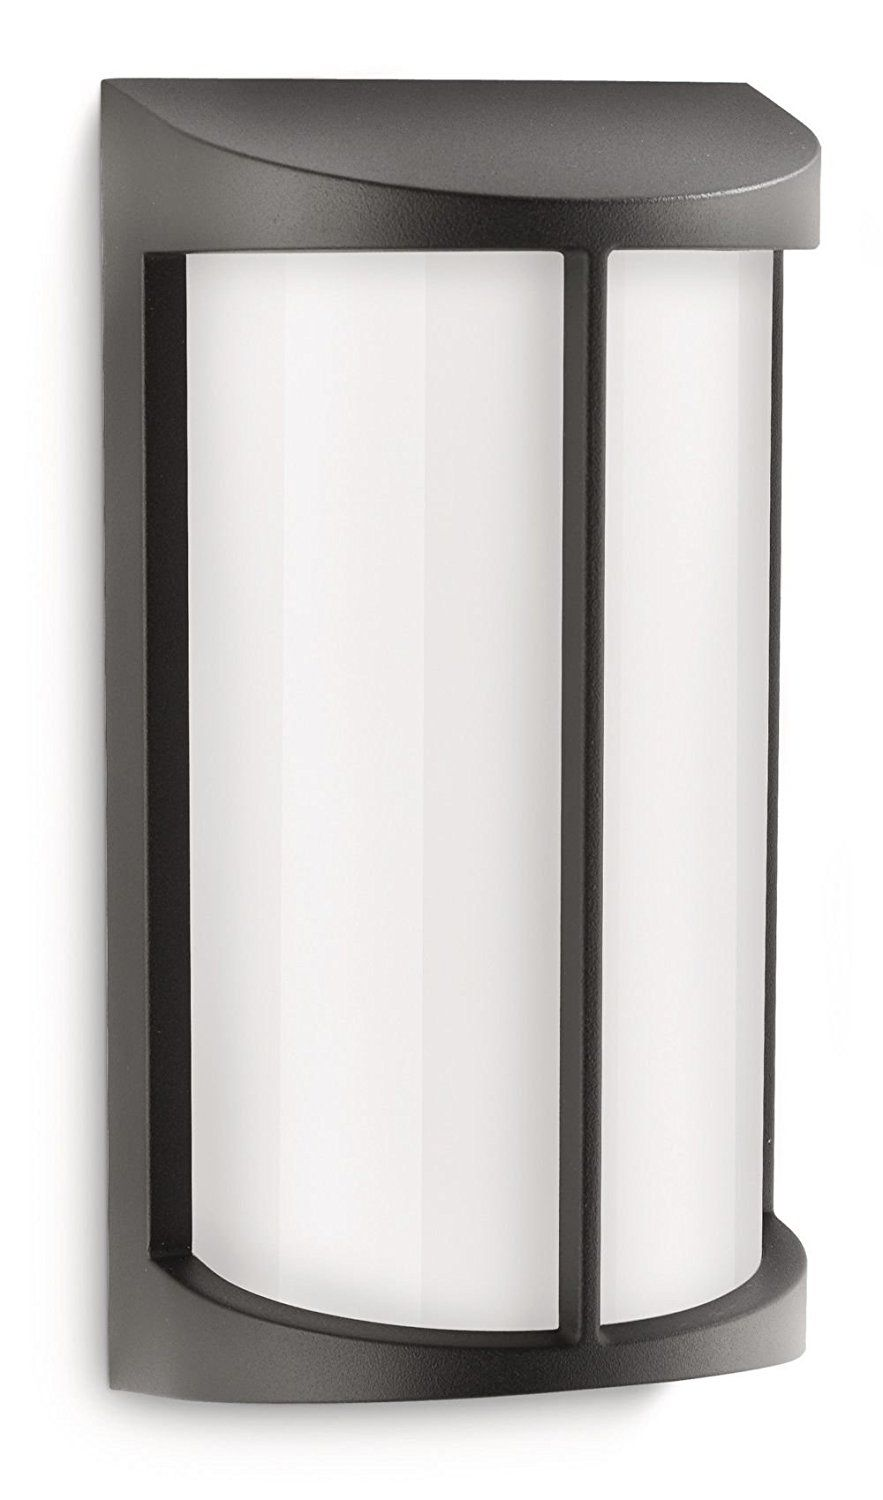 Philips ecomoods pond outdoor wall light black includes x